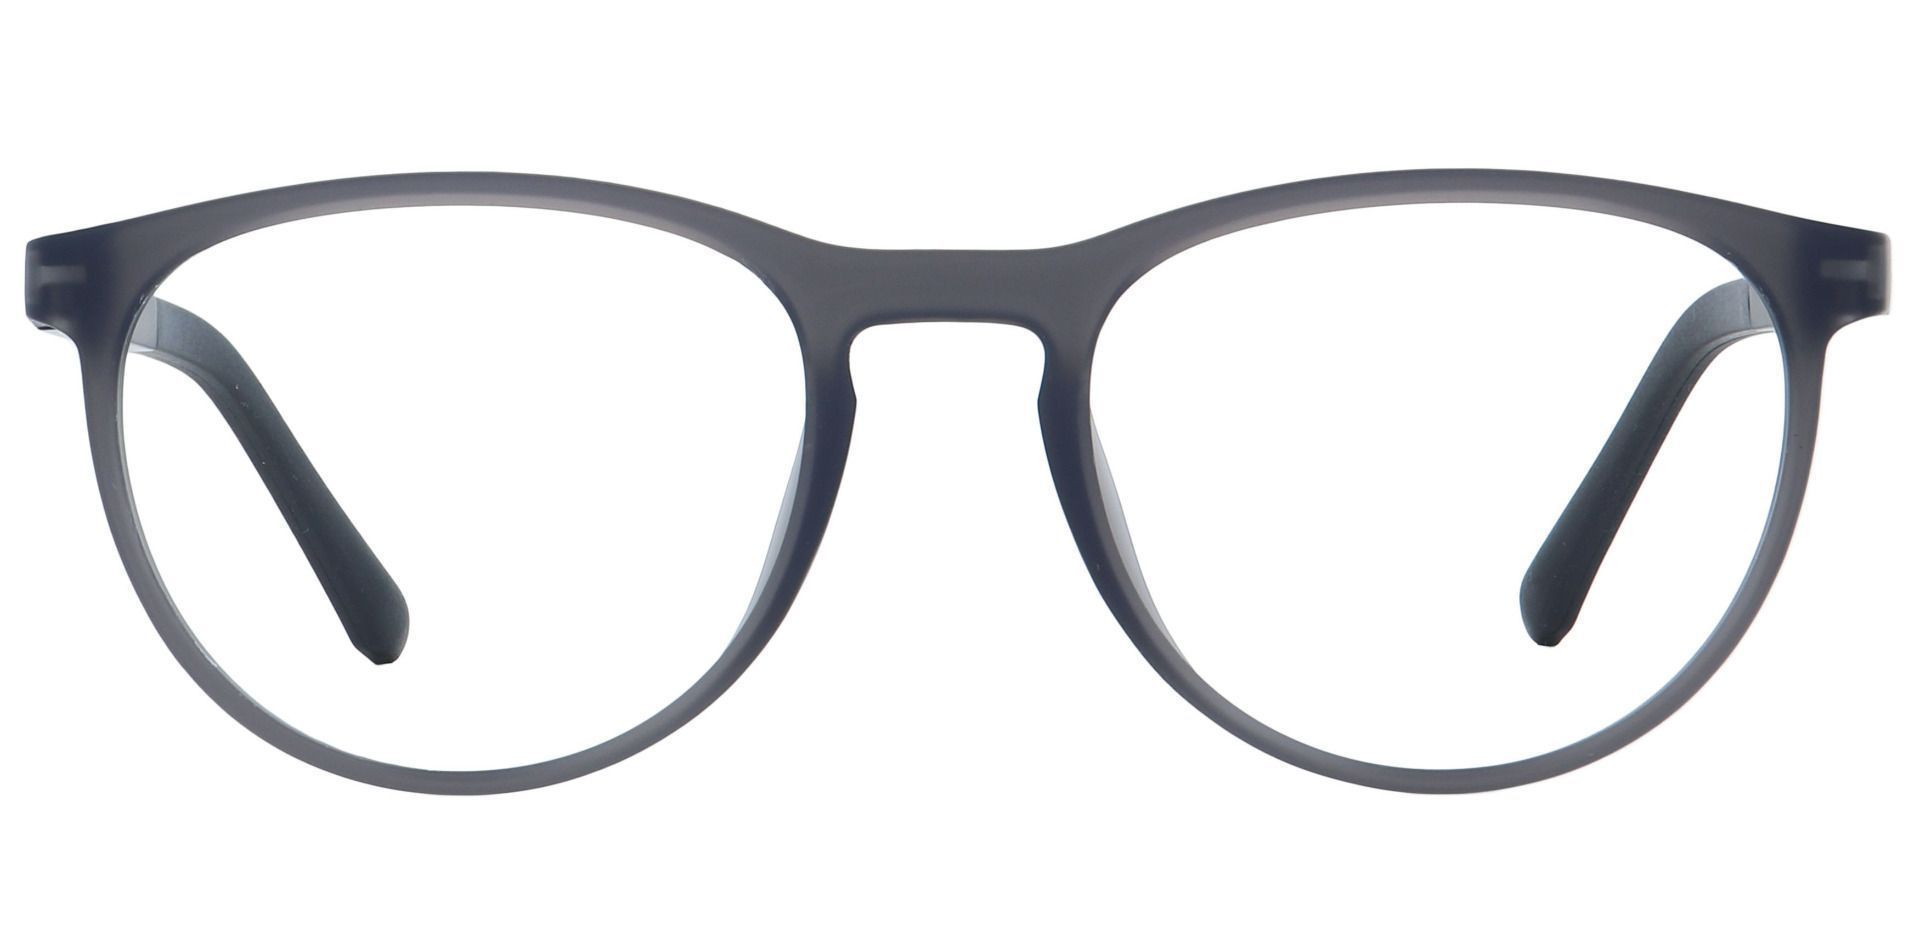 Heidi Round Progressive Glasses - Matte Dark Grey